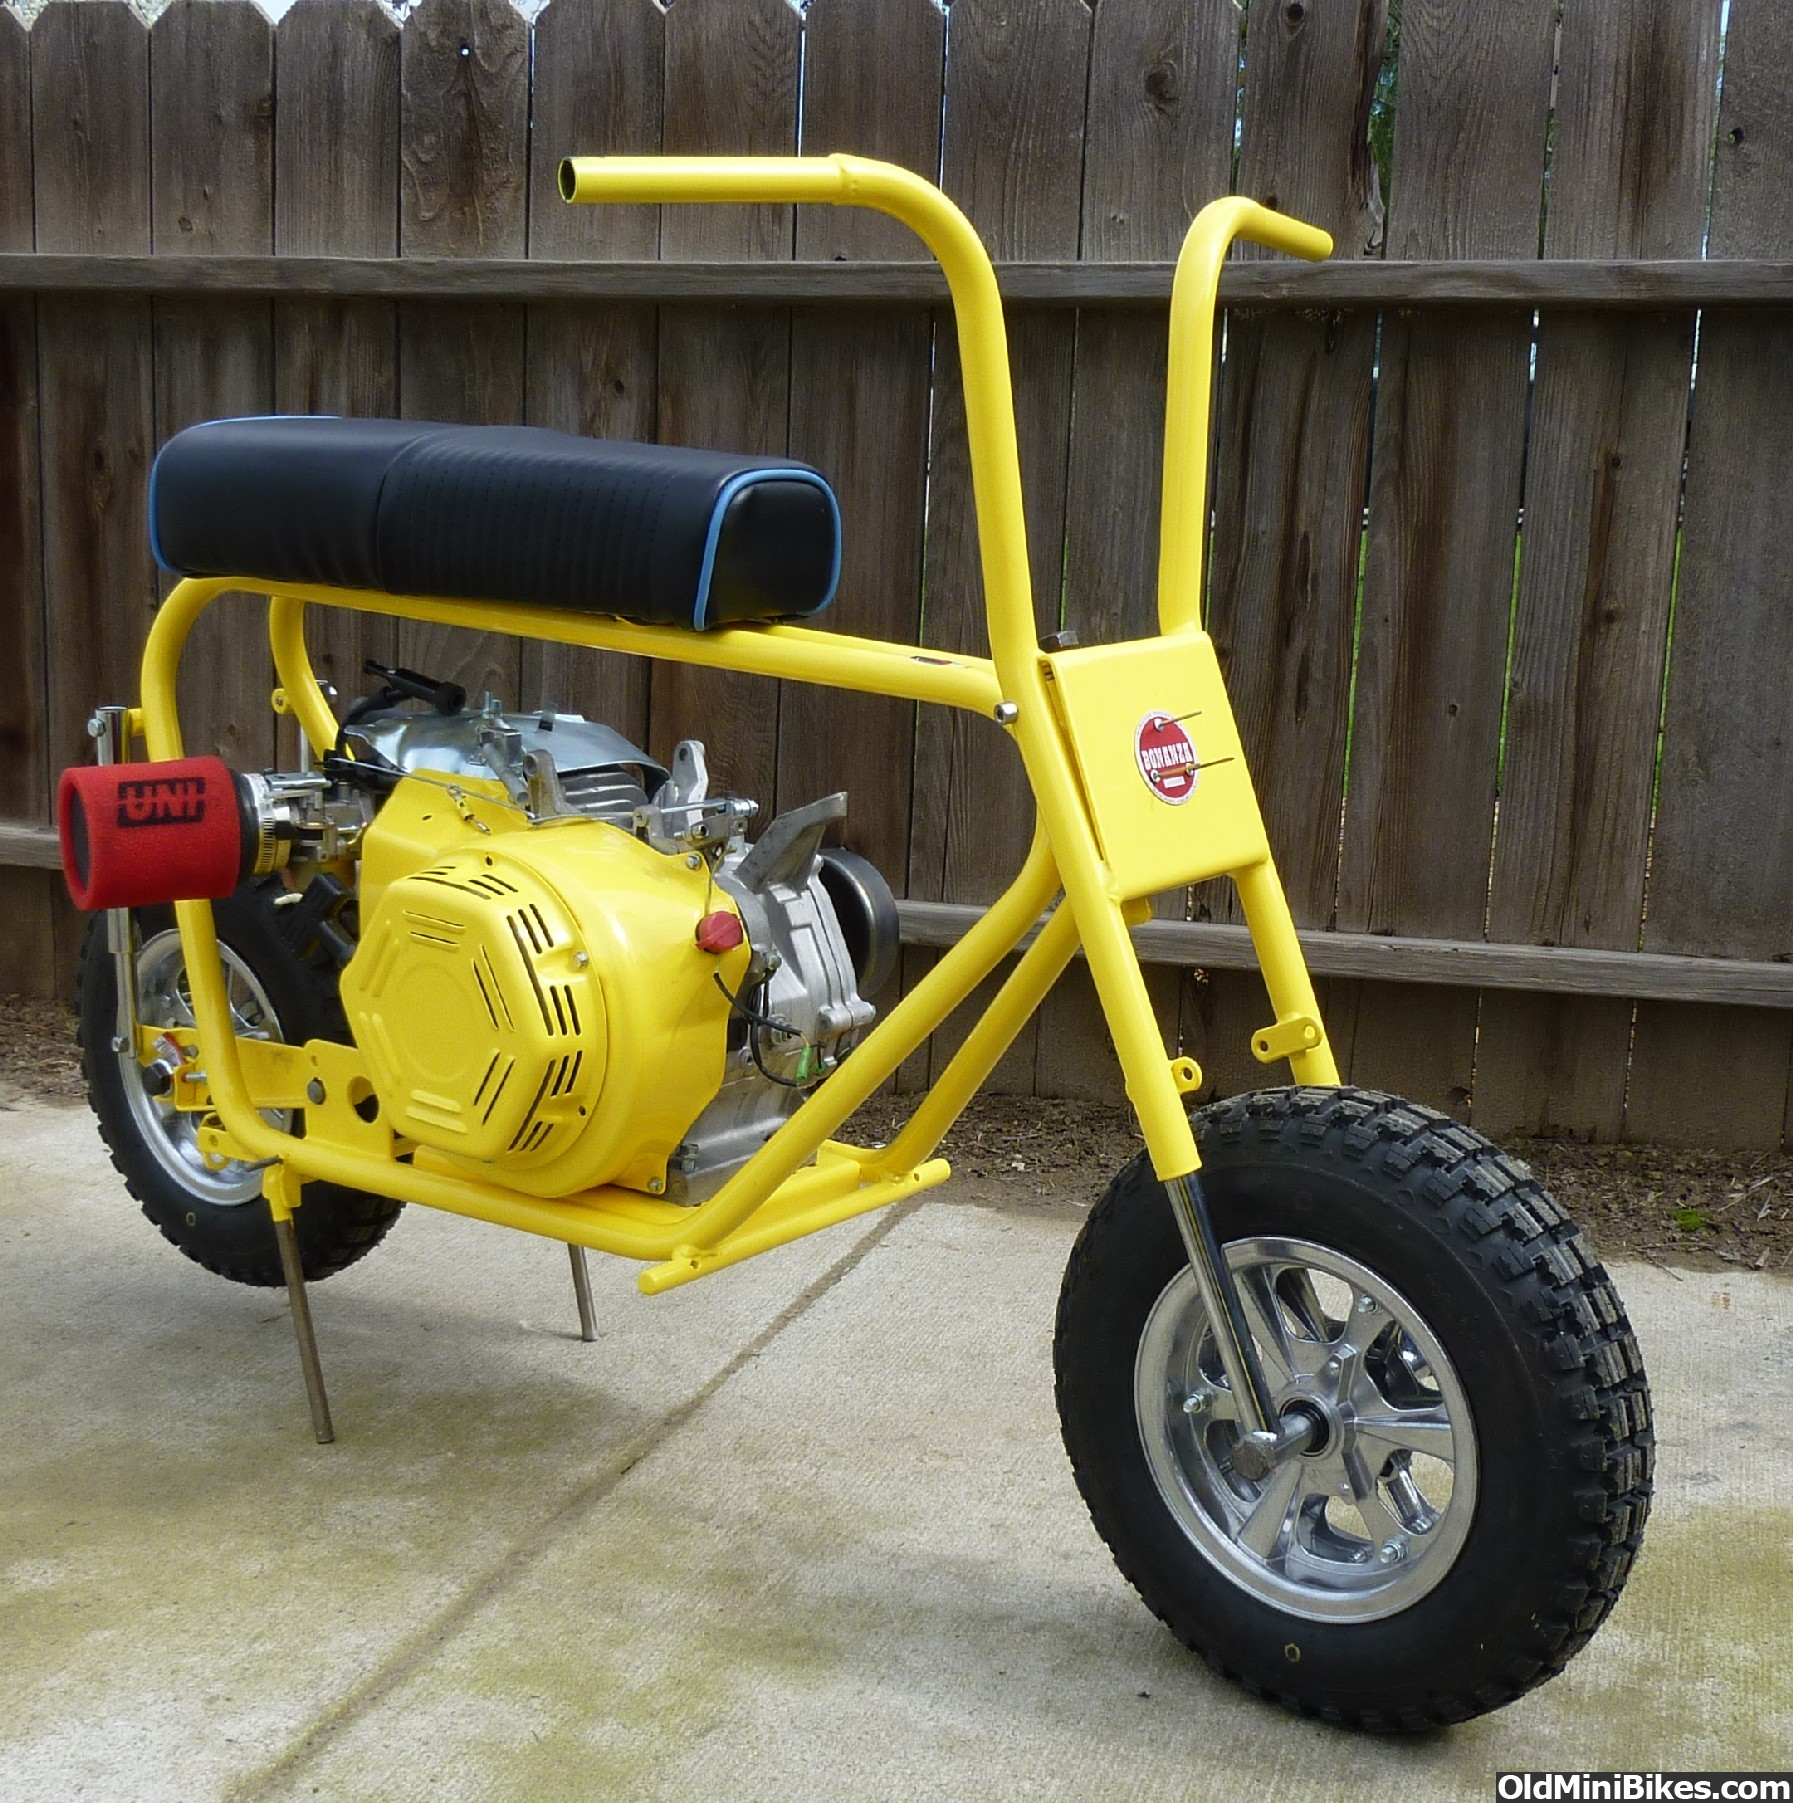 chopper wiring diagram images offroad bike transmission further homemade mini bike plans as well